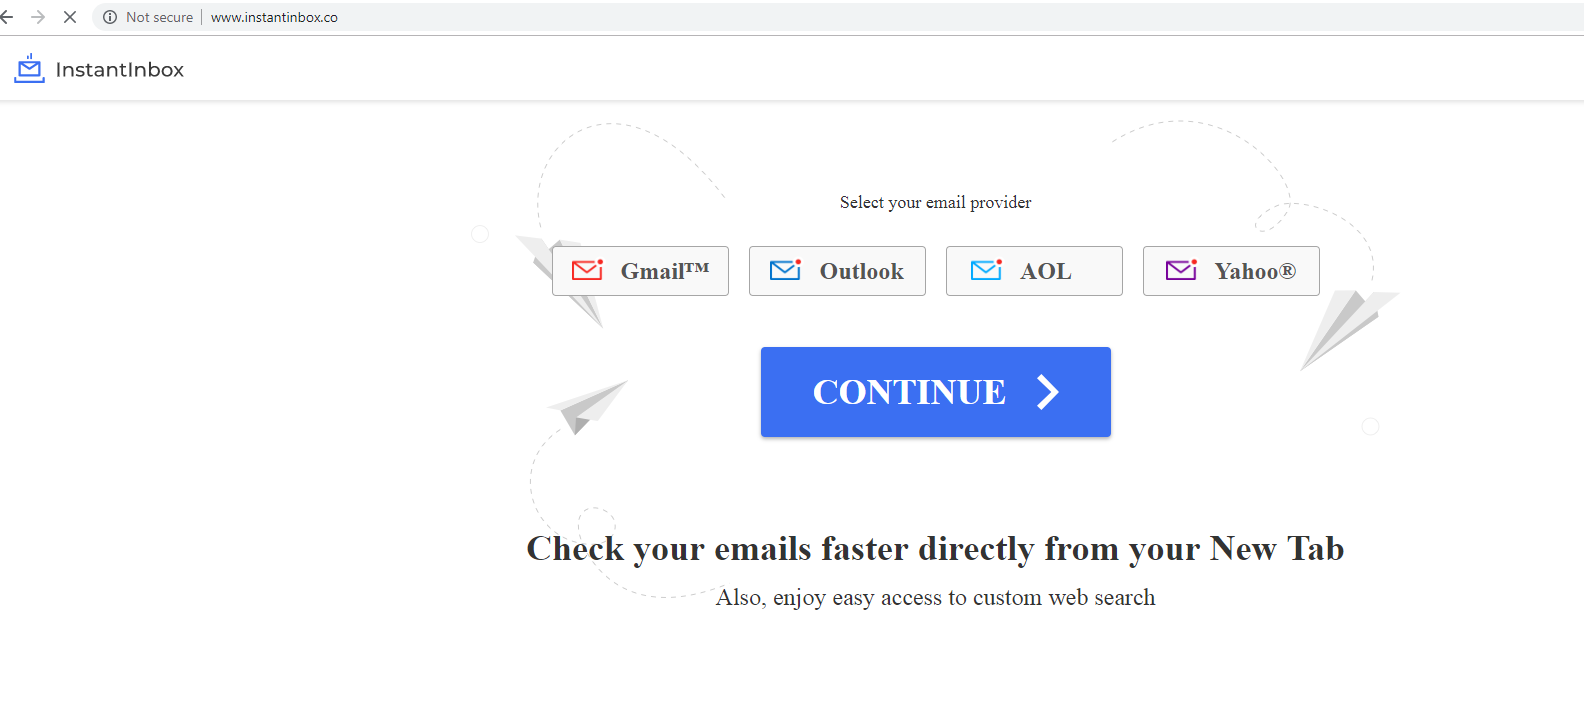 Supprimer Instantinbox.co – Instant Inbox suppression